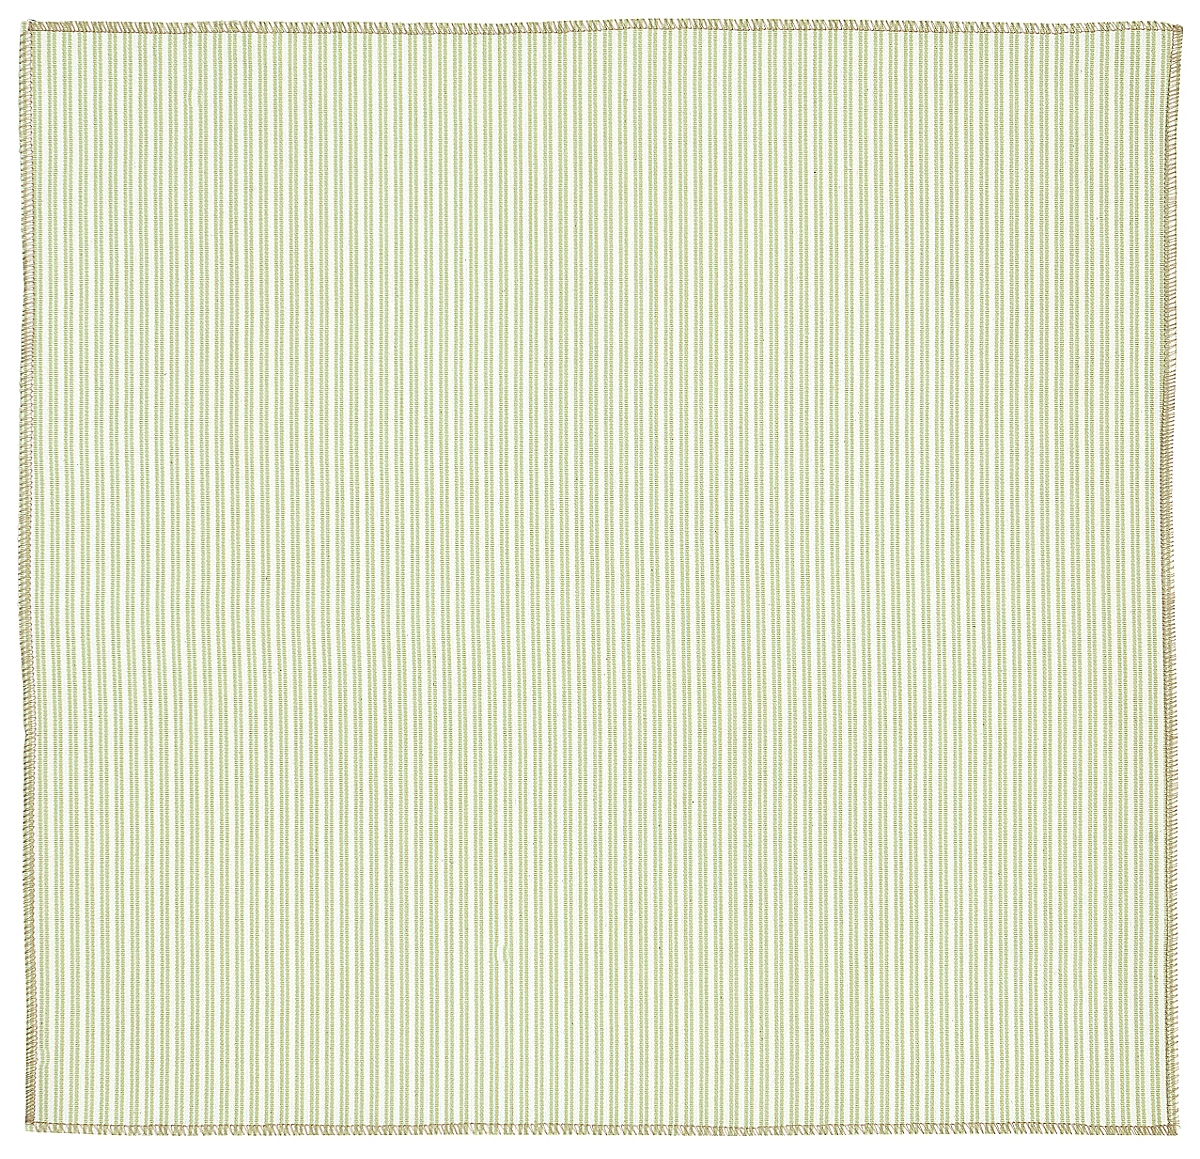 Tic Toc: Sprout (fabric yardage)